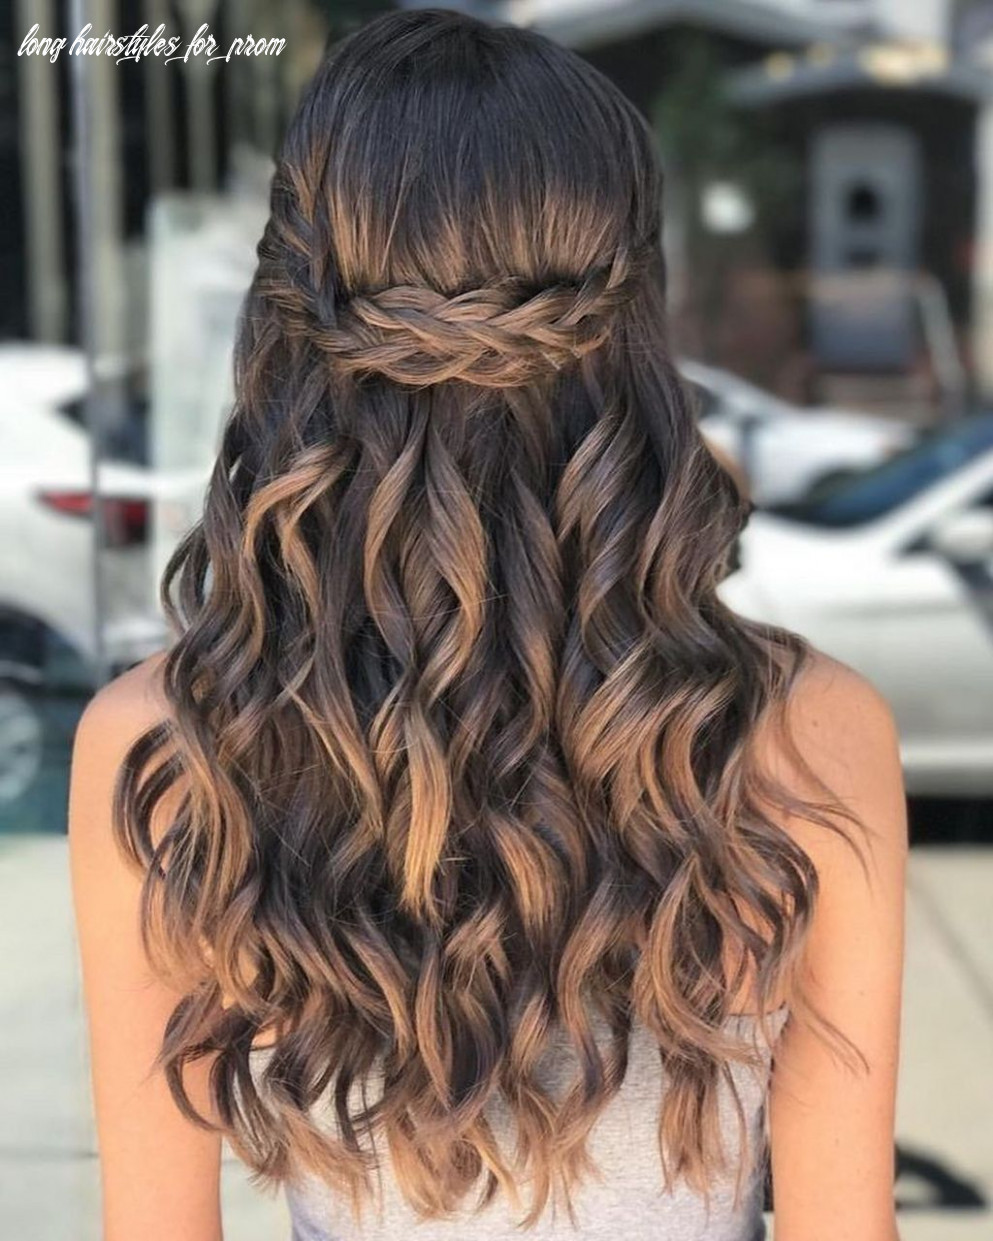 8 pretty prom hairstyle ideas for curly long hair | easy